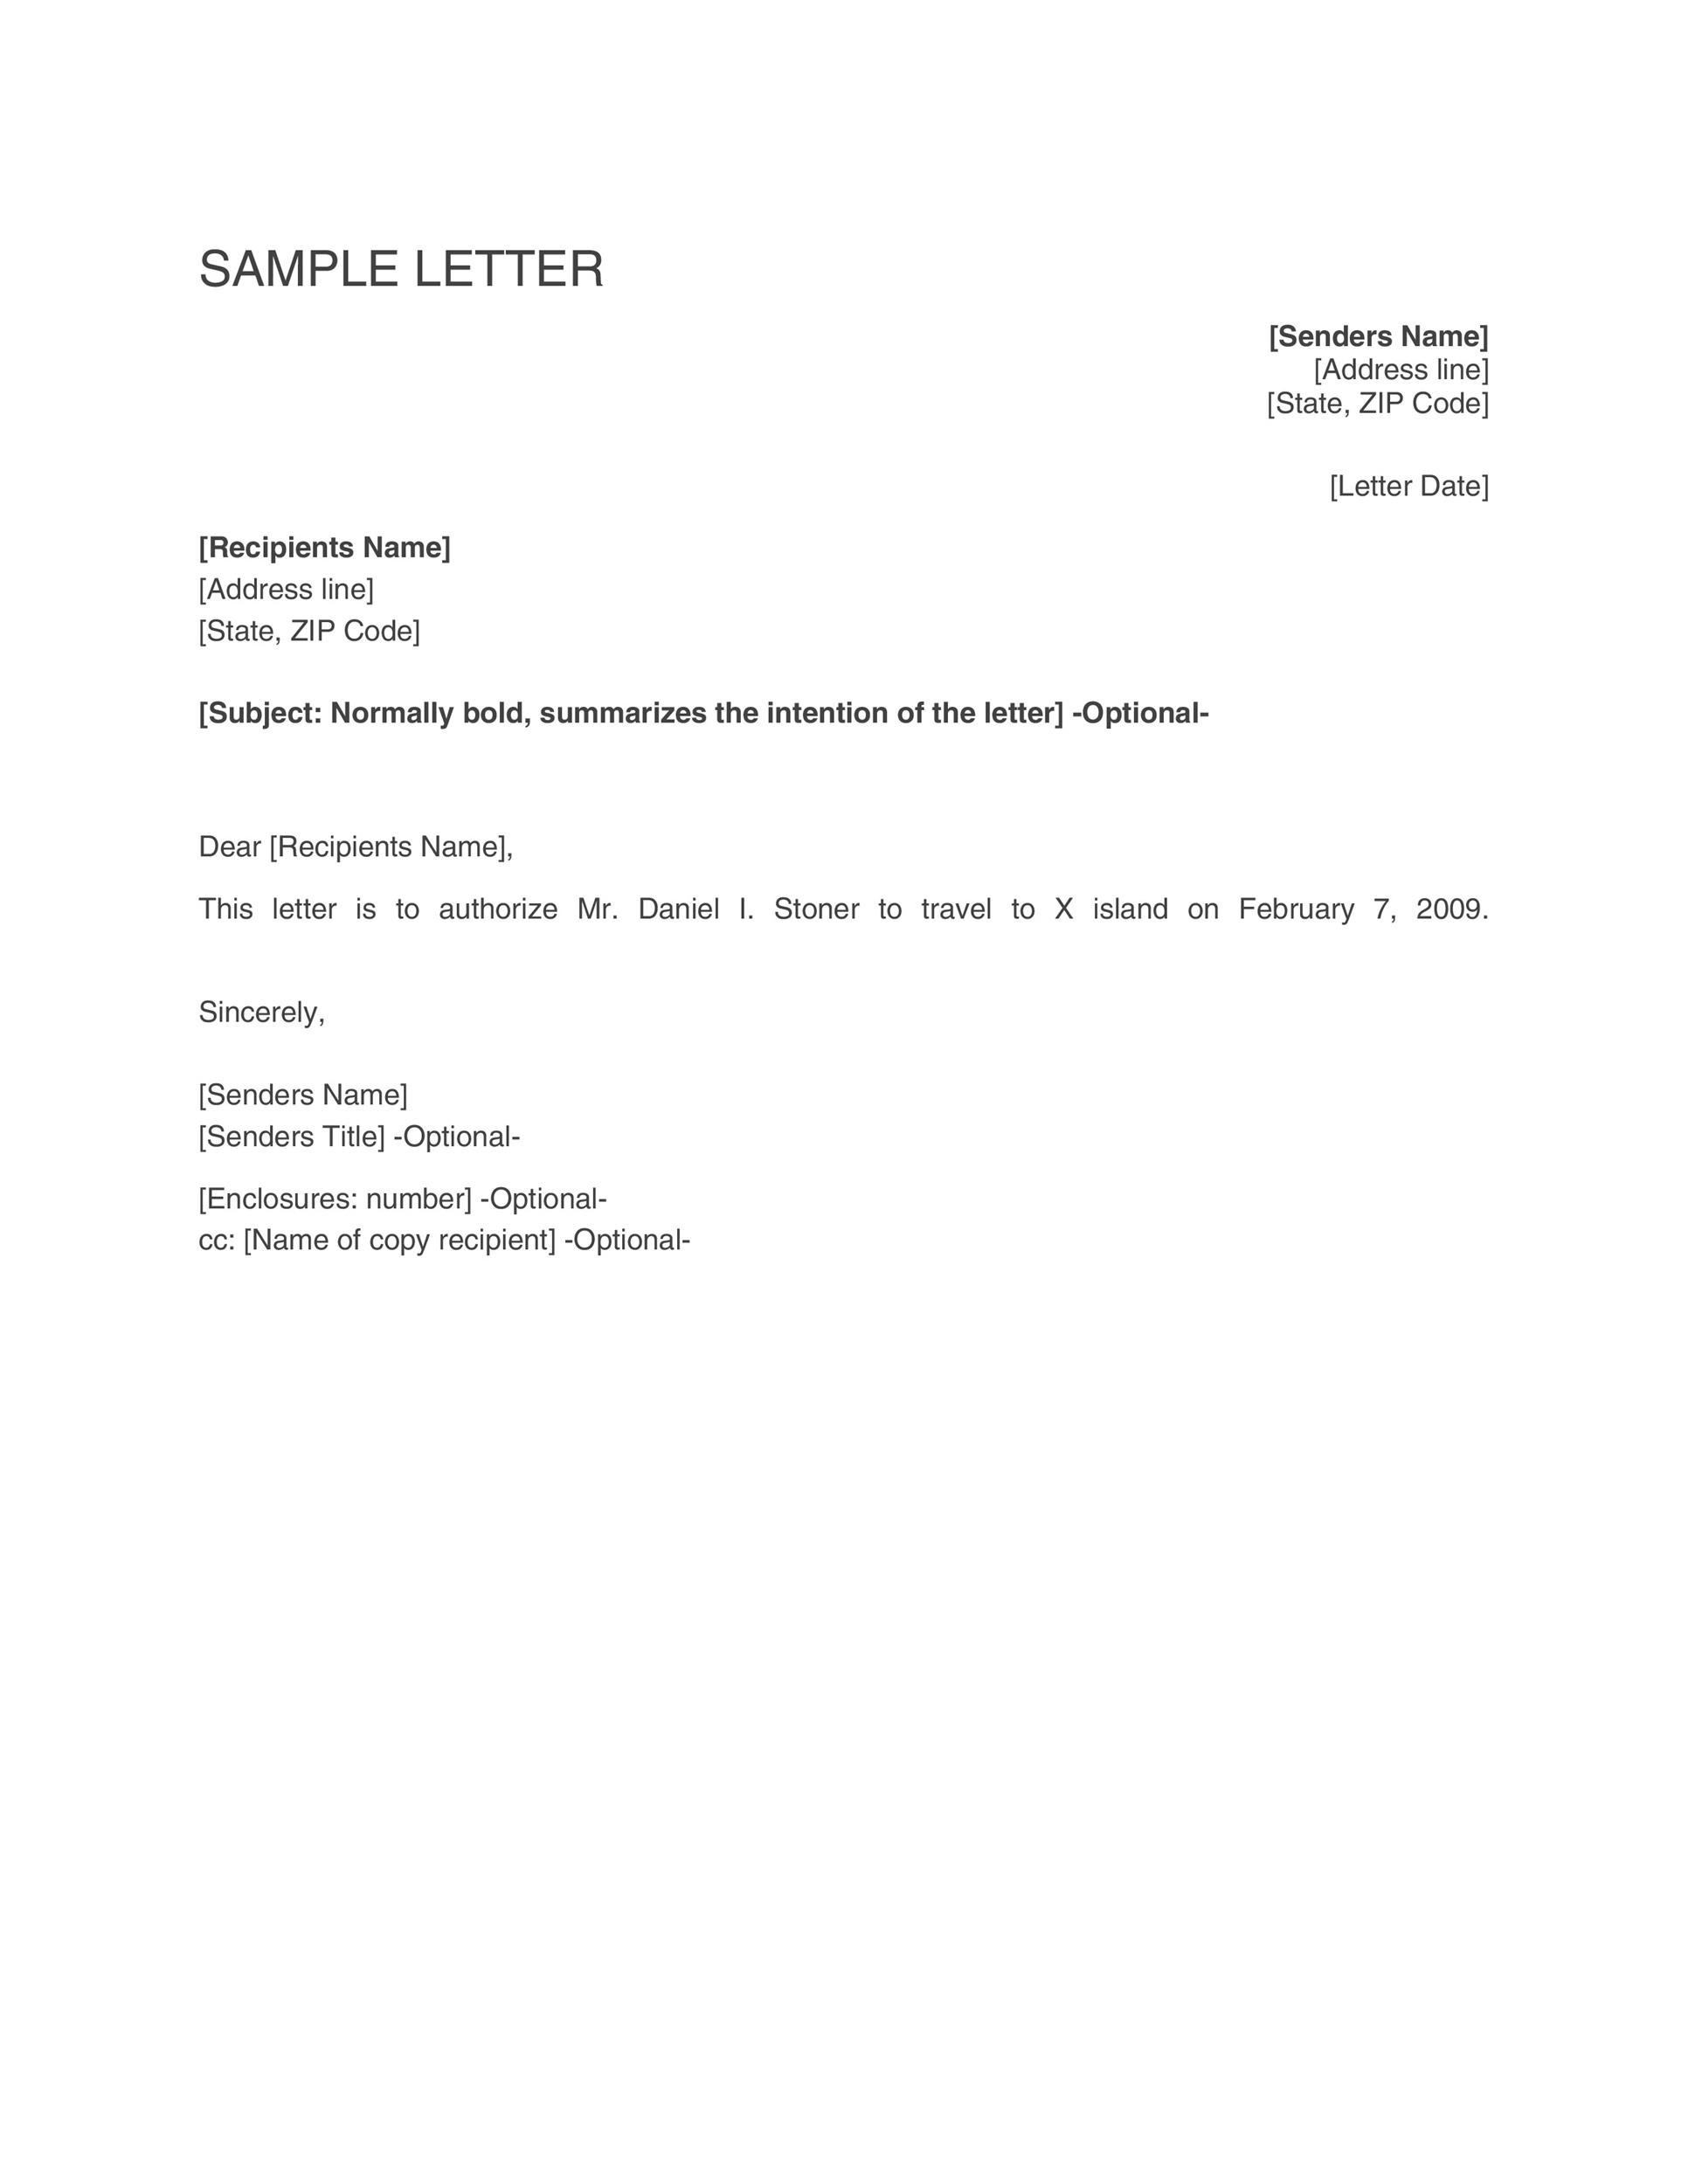 Letter Of Consent Sample from templatelab.com